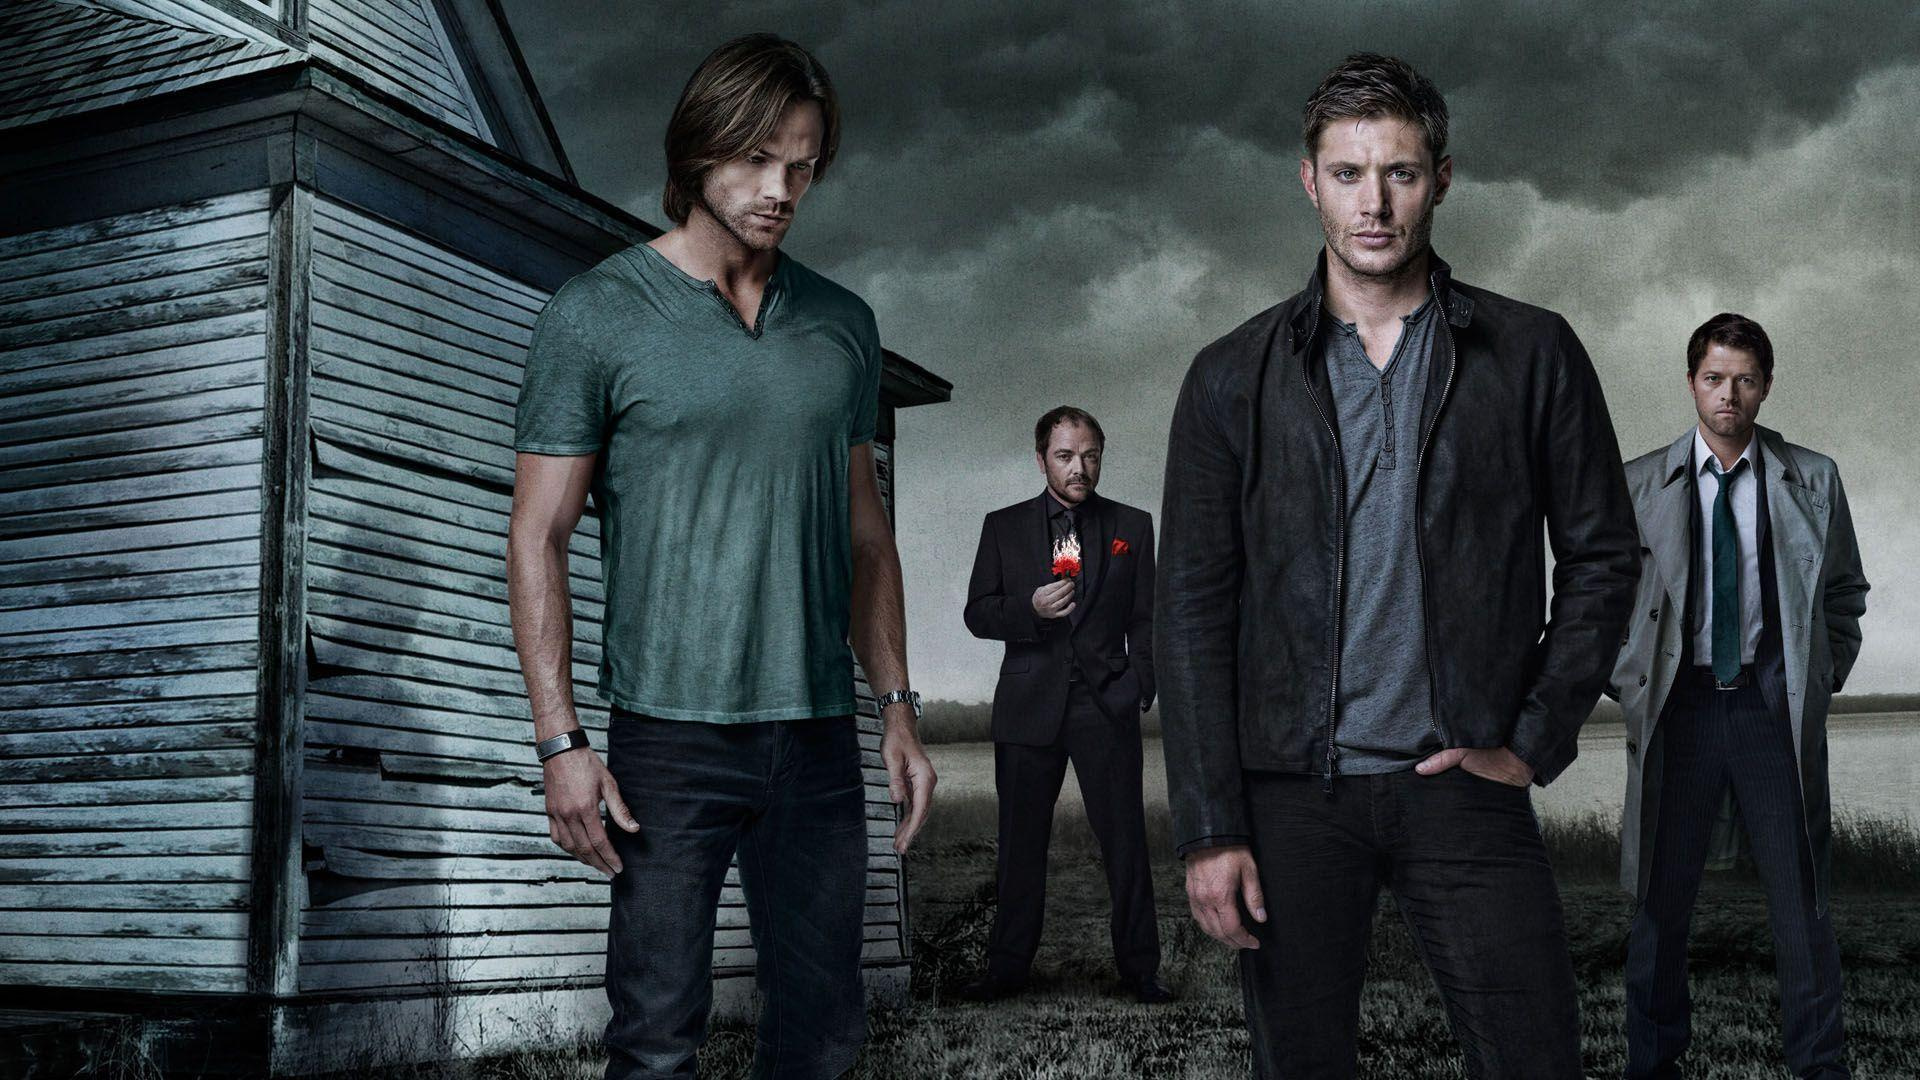 Interesting Supernatural Wallpapers 1920x1080PX ~ Supernatural